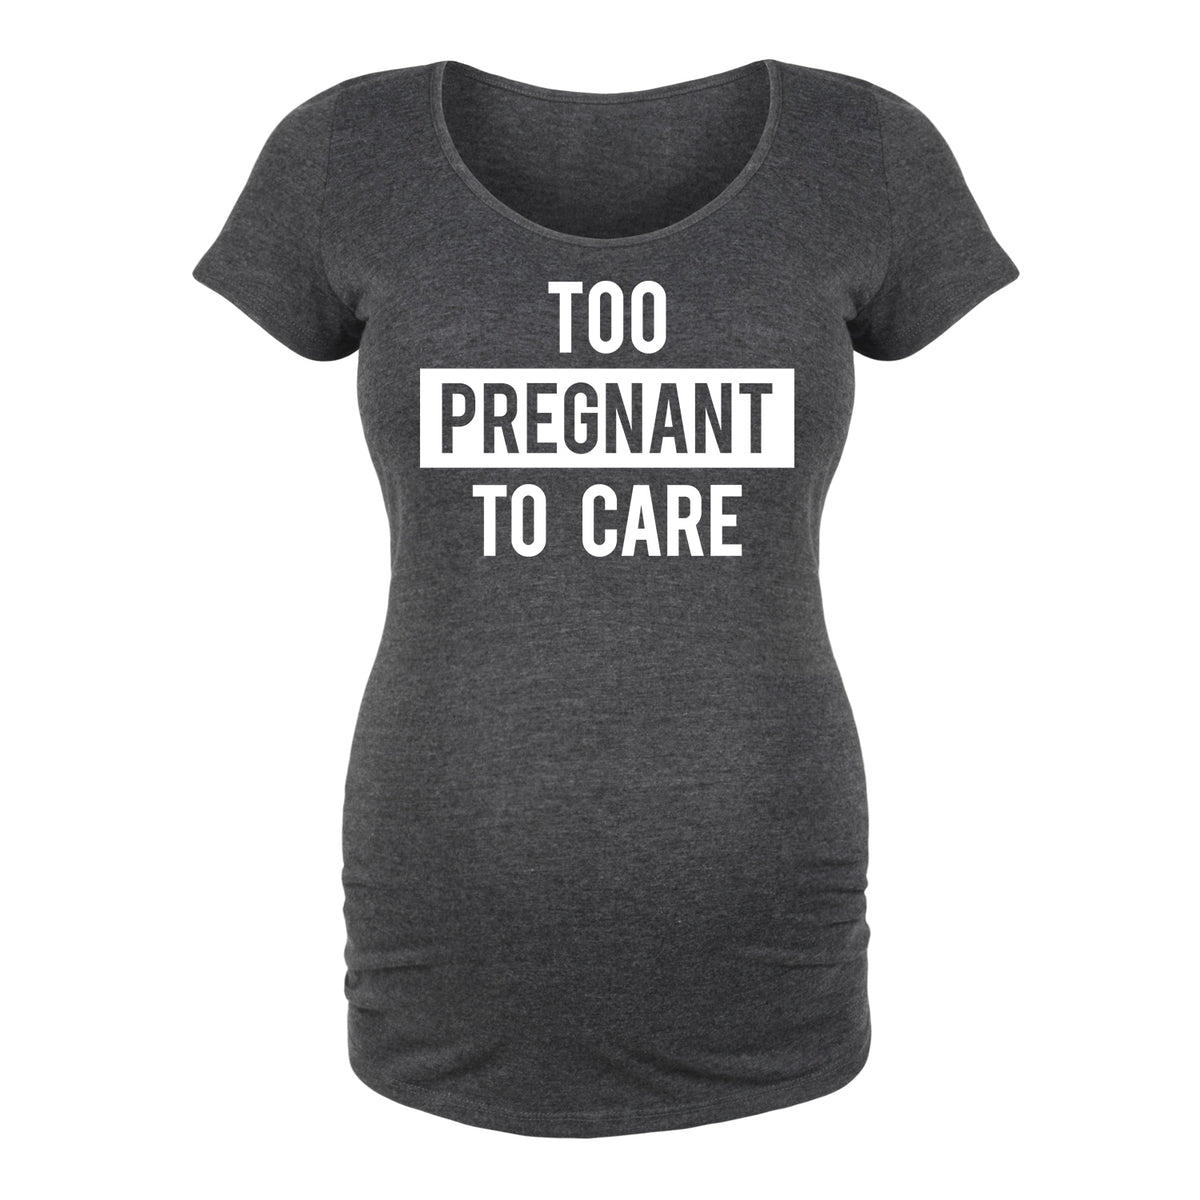 Too Pregnant To Care - Maternity Short Sleeve T-Shirt